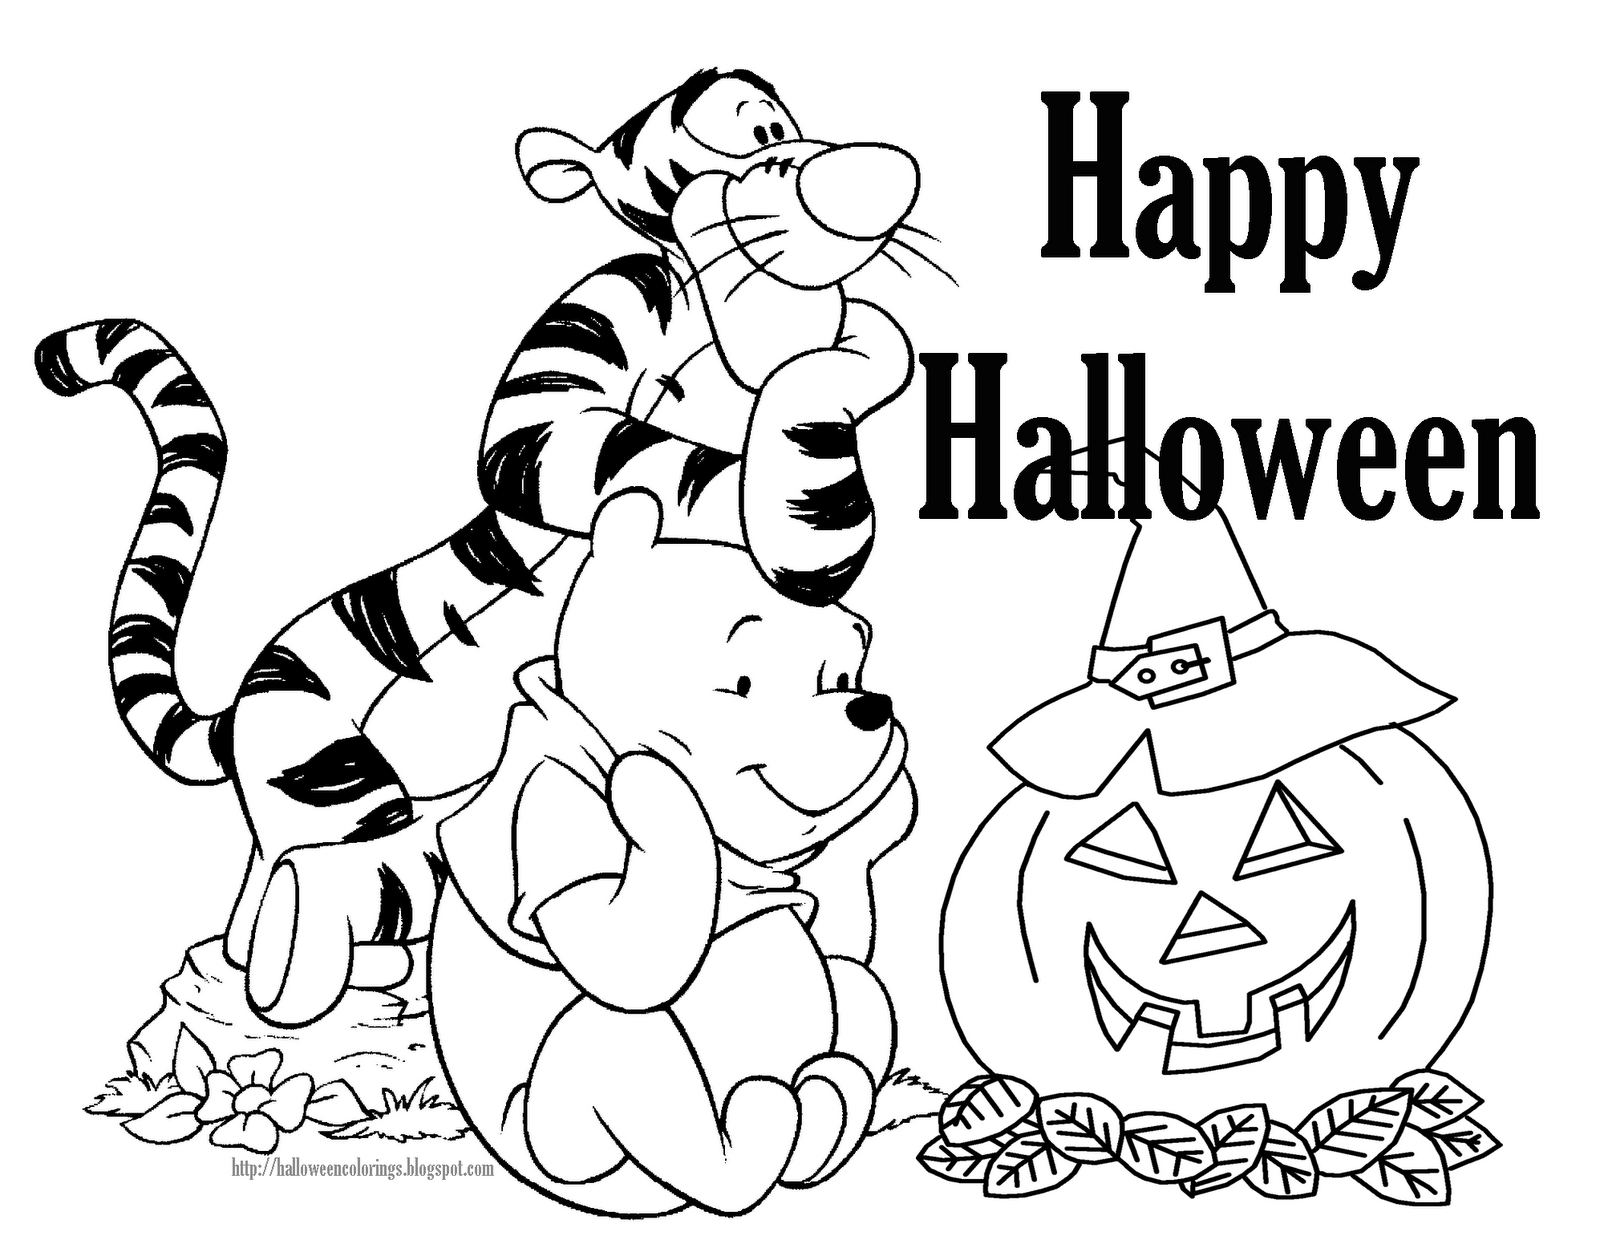 Halloween coloring pages free printable minnesota miranda for Halloween print out coloring pages